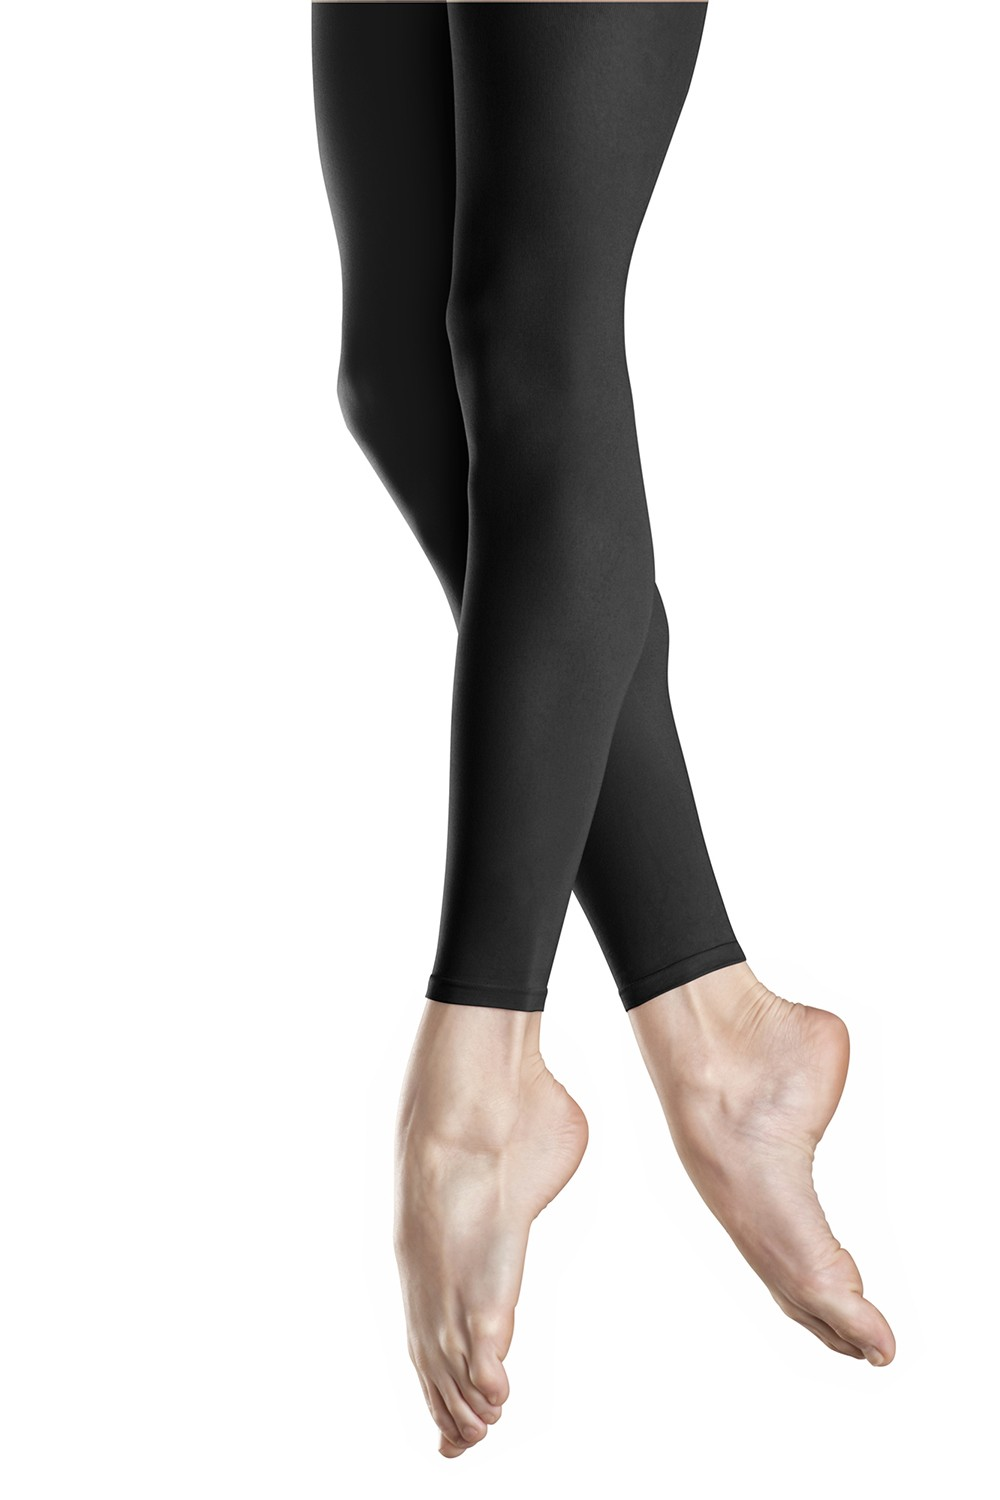 Collant Fille Endura Sans Pieds Children's Dance Tights